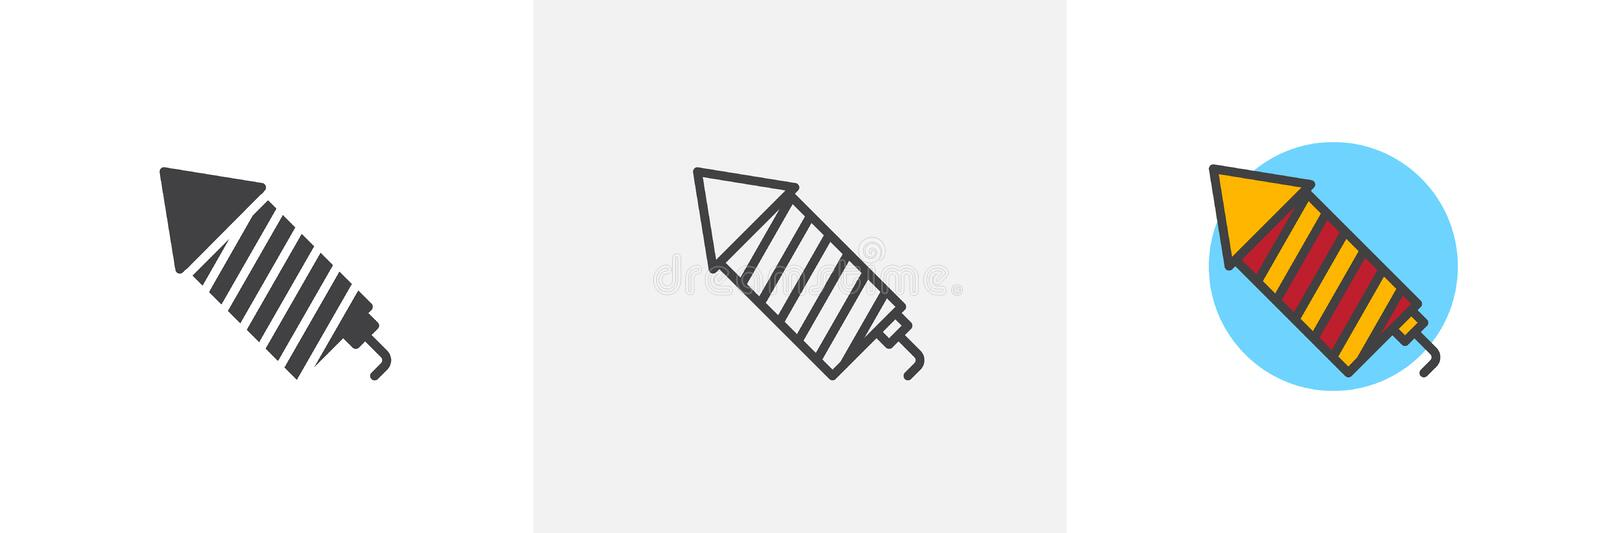 Fireworks rocket different style icons stock illustration